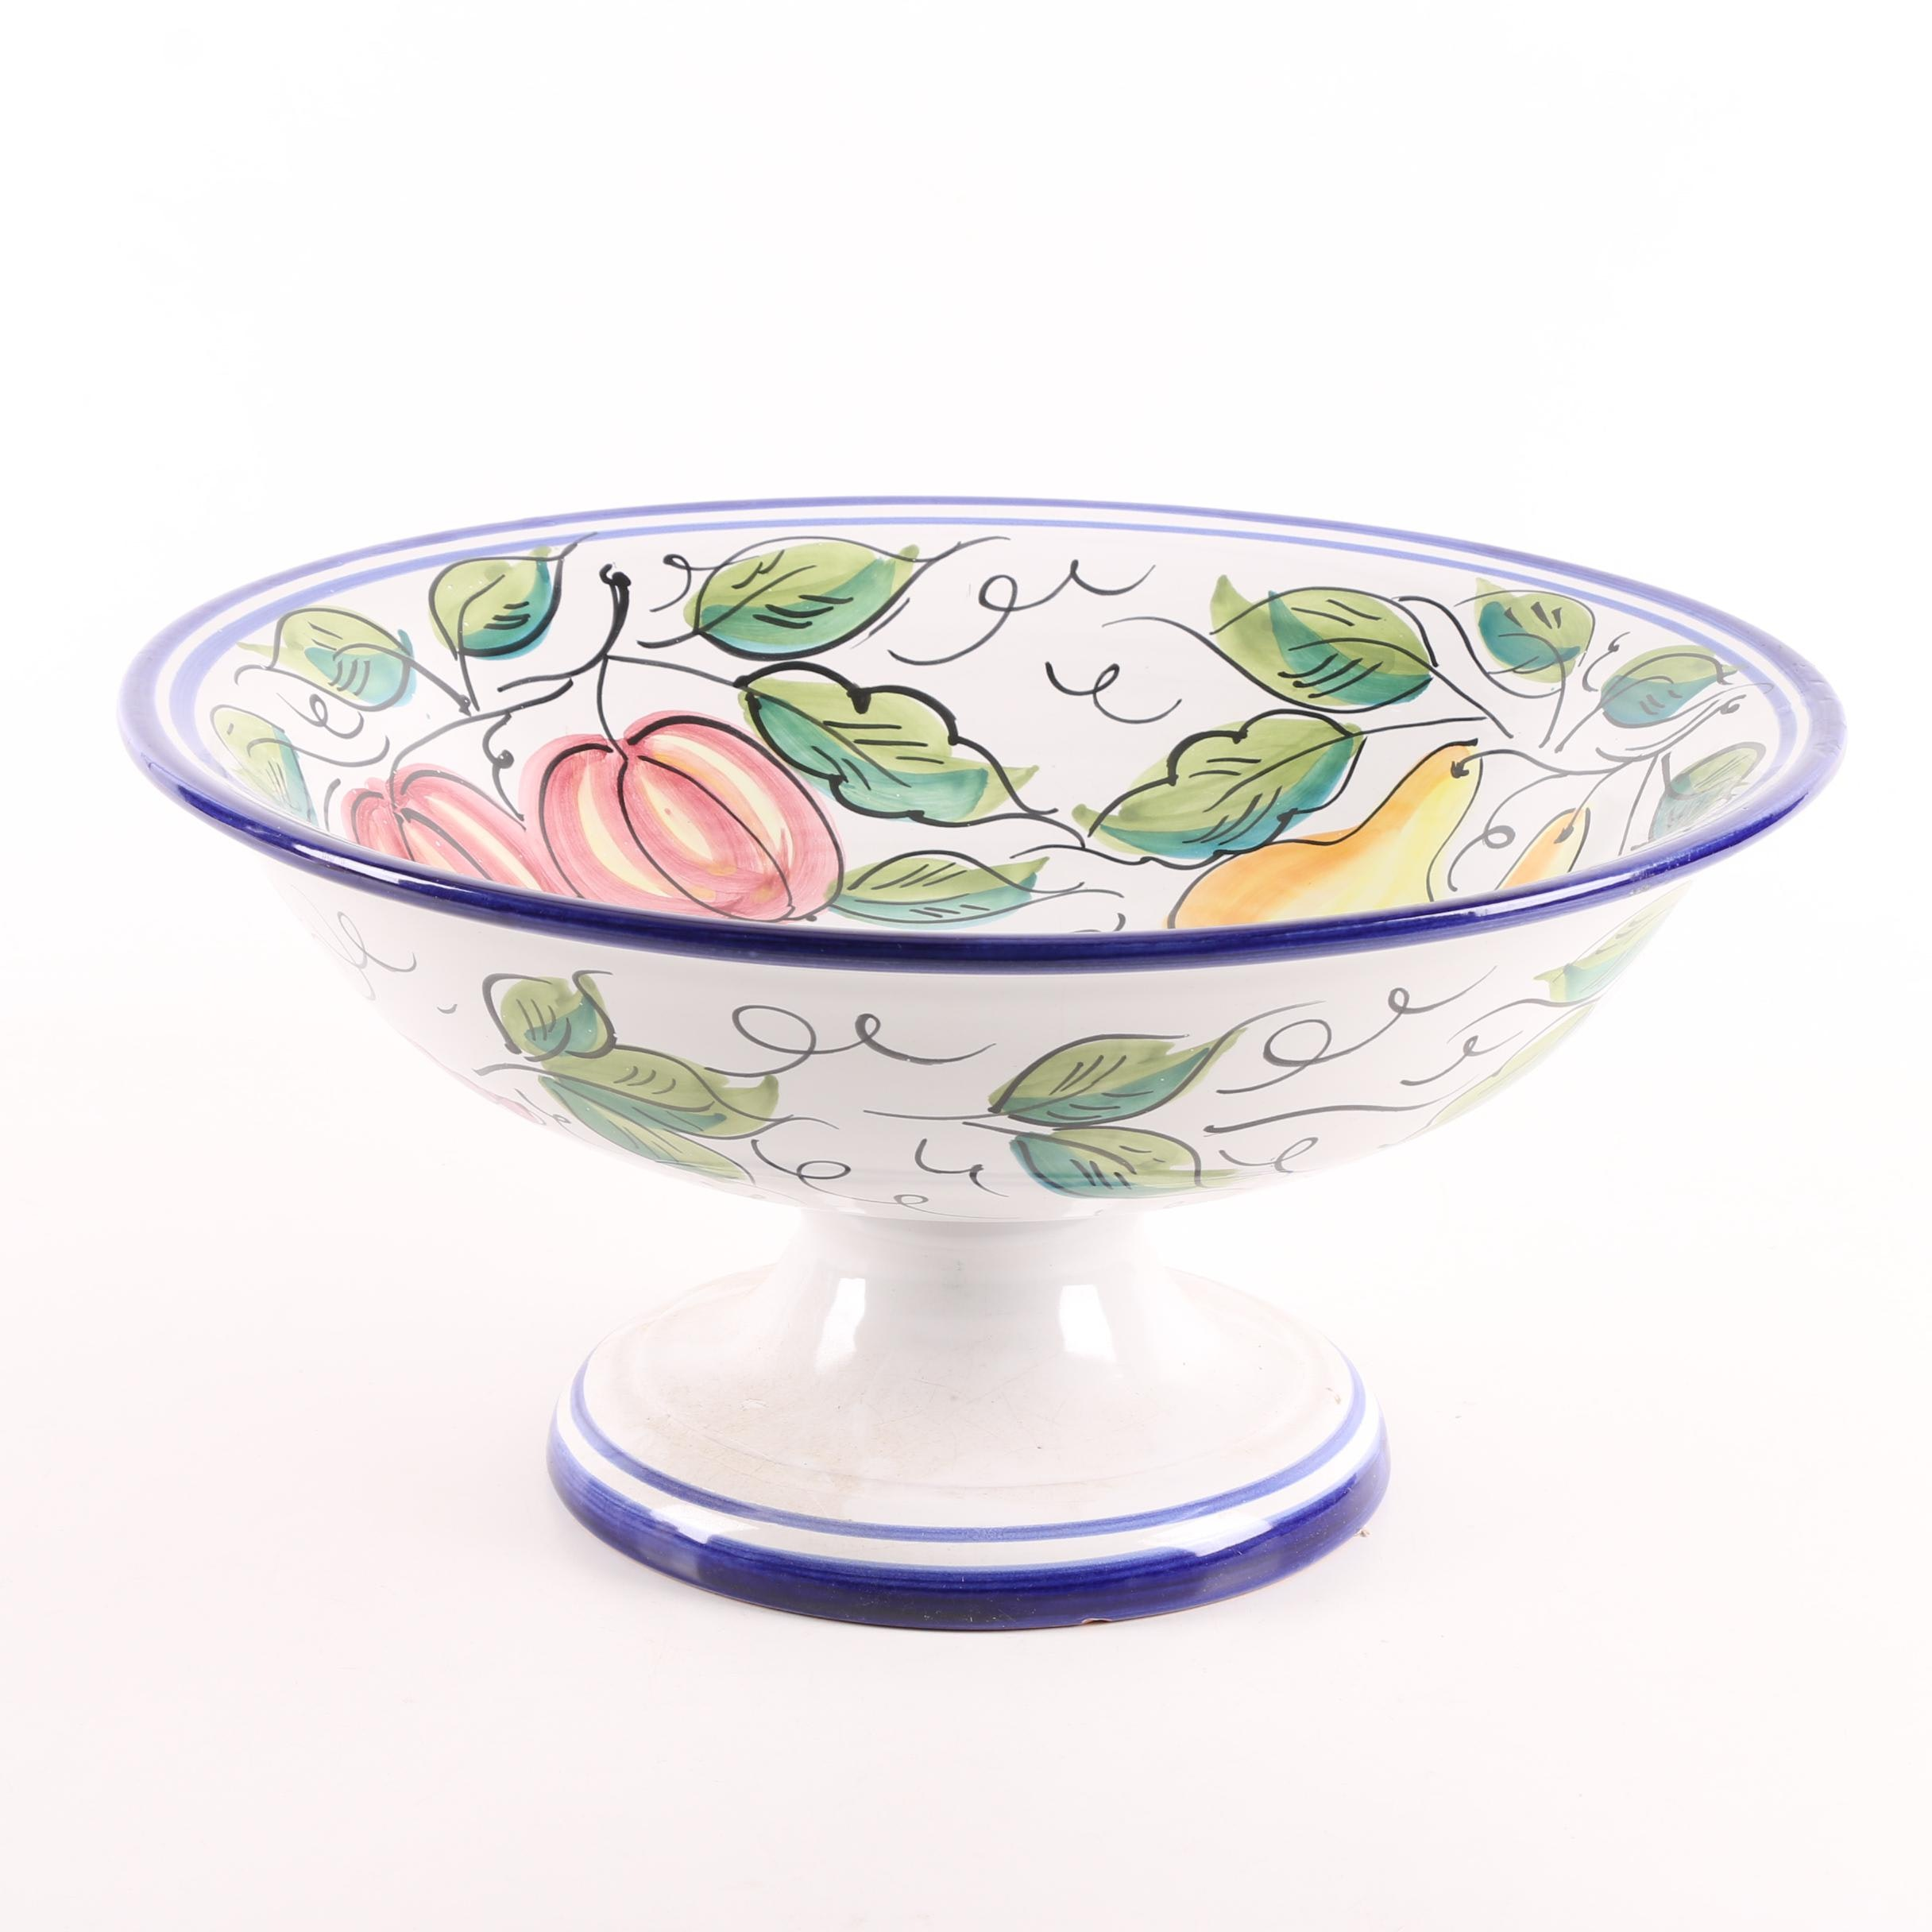 Vietri Italian Pottery Footed Bowl with Fruit Pattern